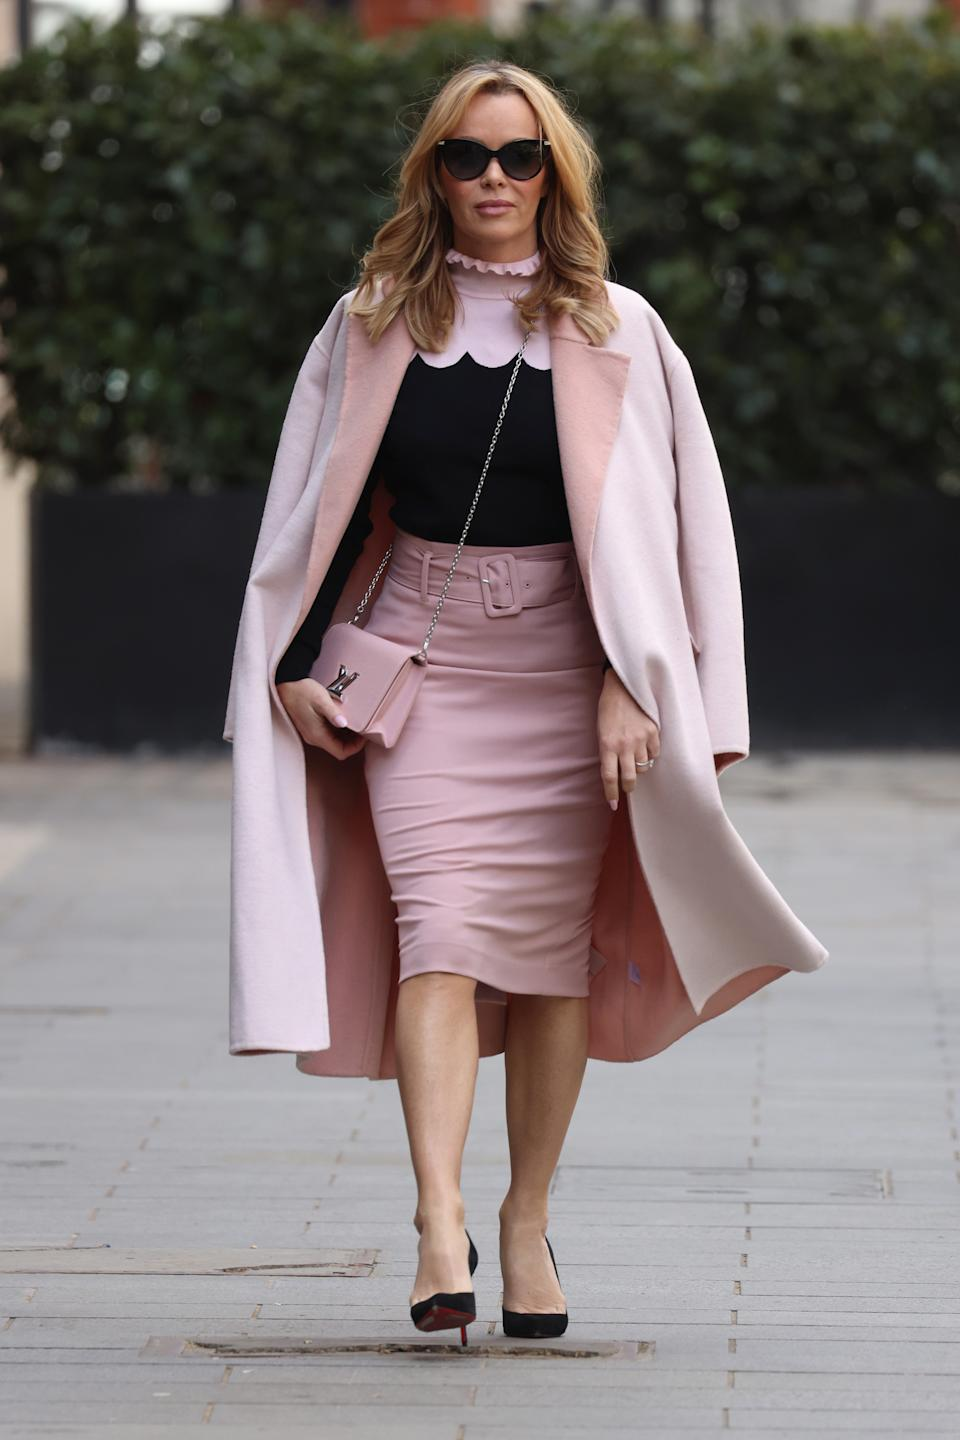 Amanda Holden wears a colour block jumper from John Lewis and an M&S pencil skirt as she leaves Heart Breakfast Radio Studios on 5 May. (Getty Images)